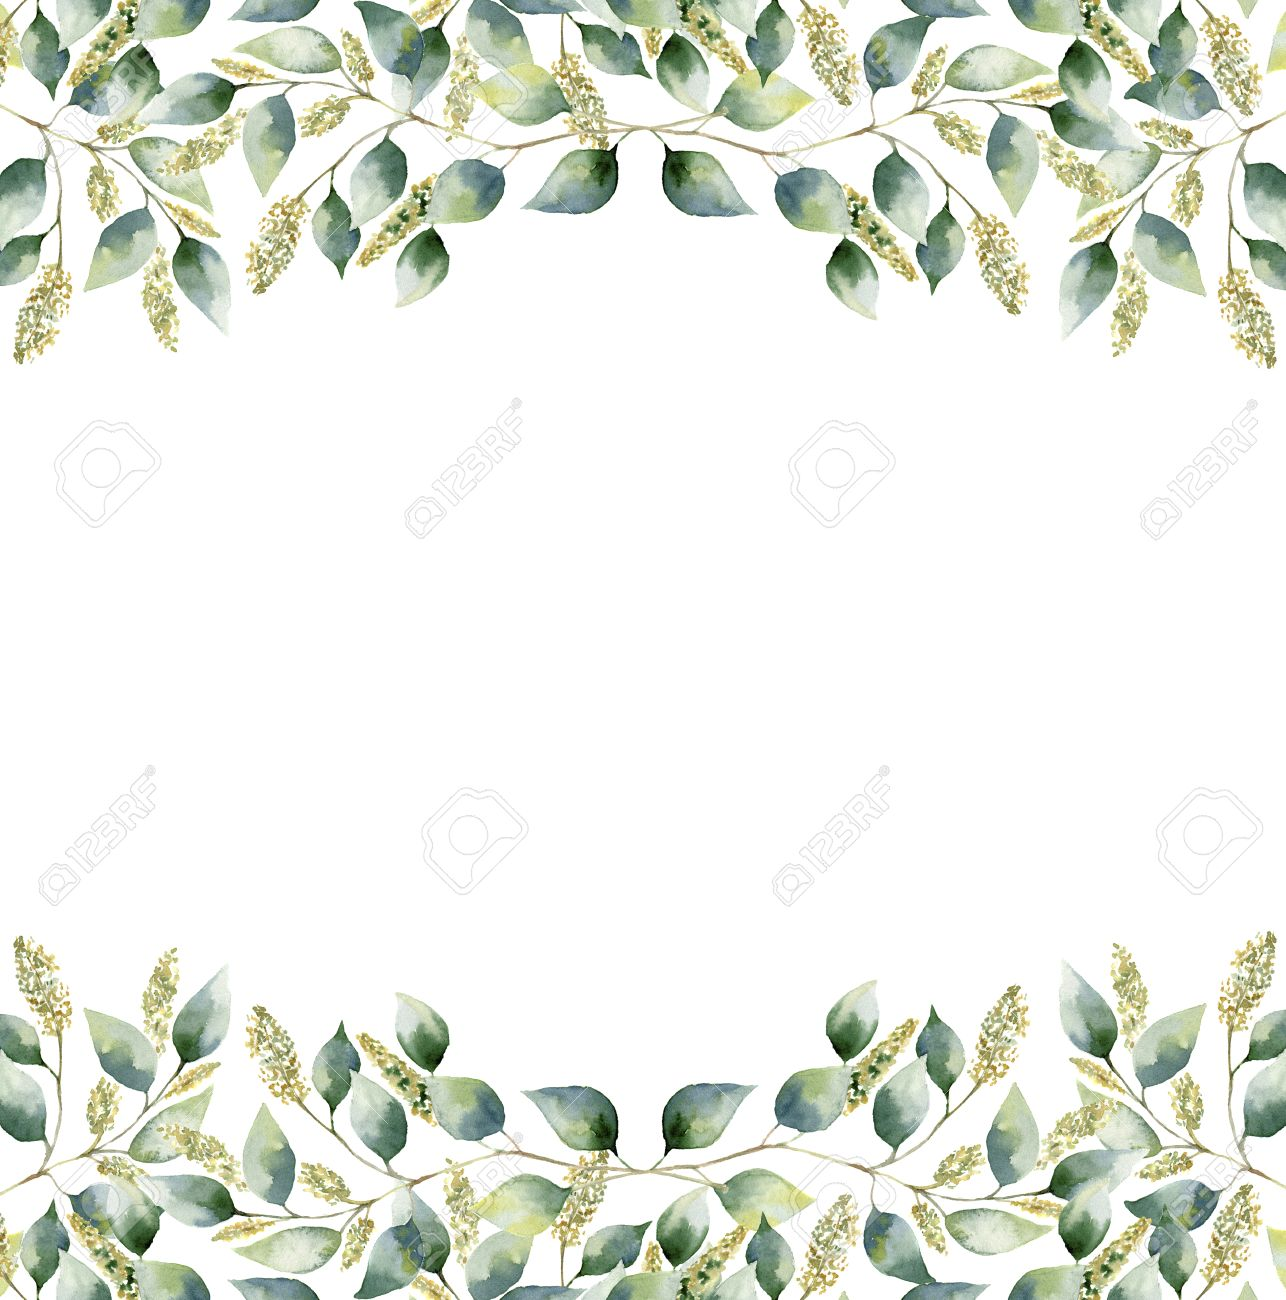 stock photo watercolor green floral frame card with seeded eucalyptus leaves hand painted border with branches and leaves of eucalyptus isolated on white